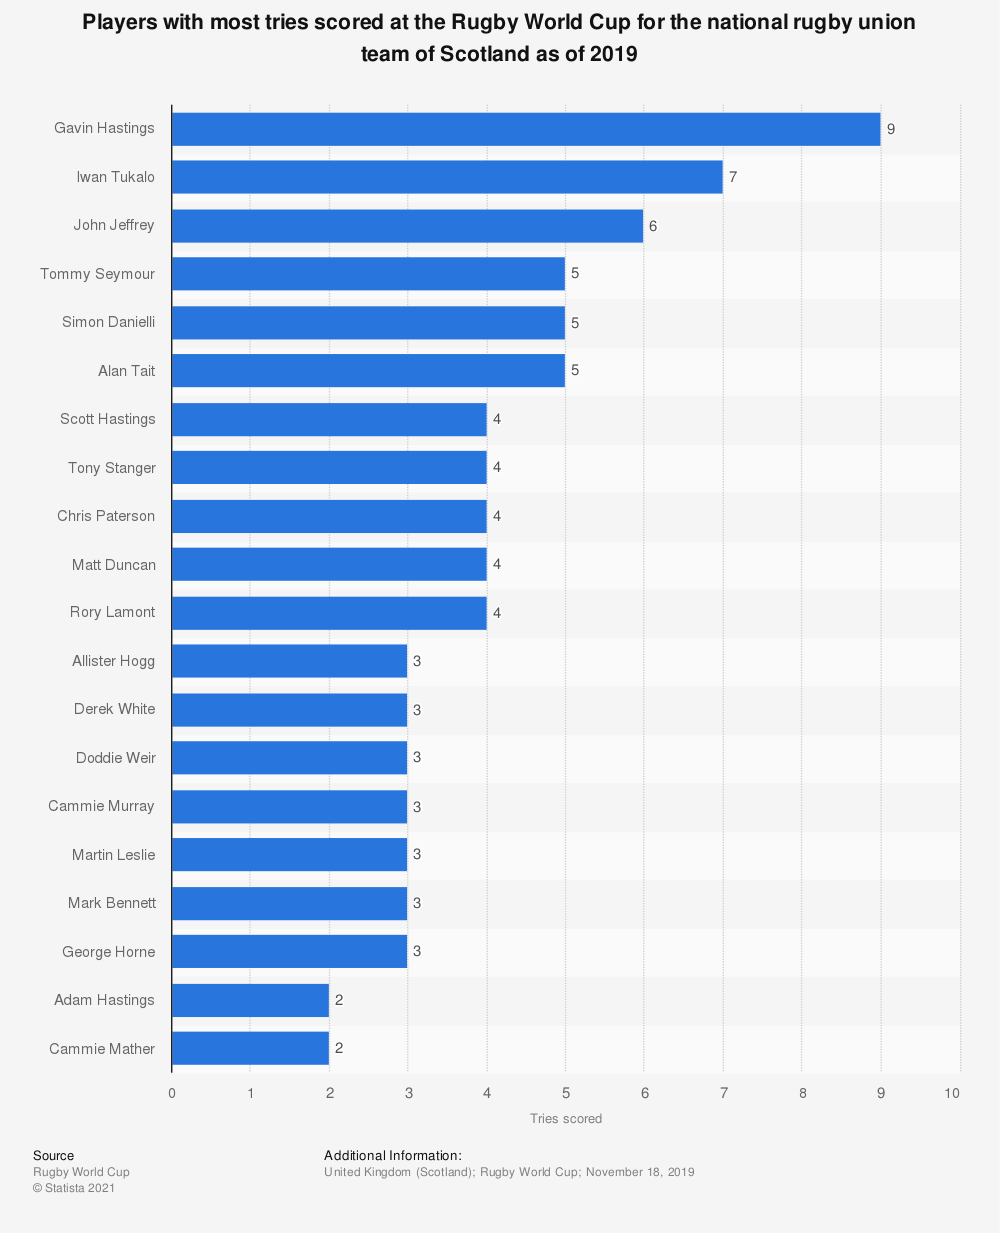 Statistic: Players with most tries scored at the Rugby World Cup for the national rugby union team of Scotland as of 2019 | Statista